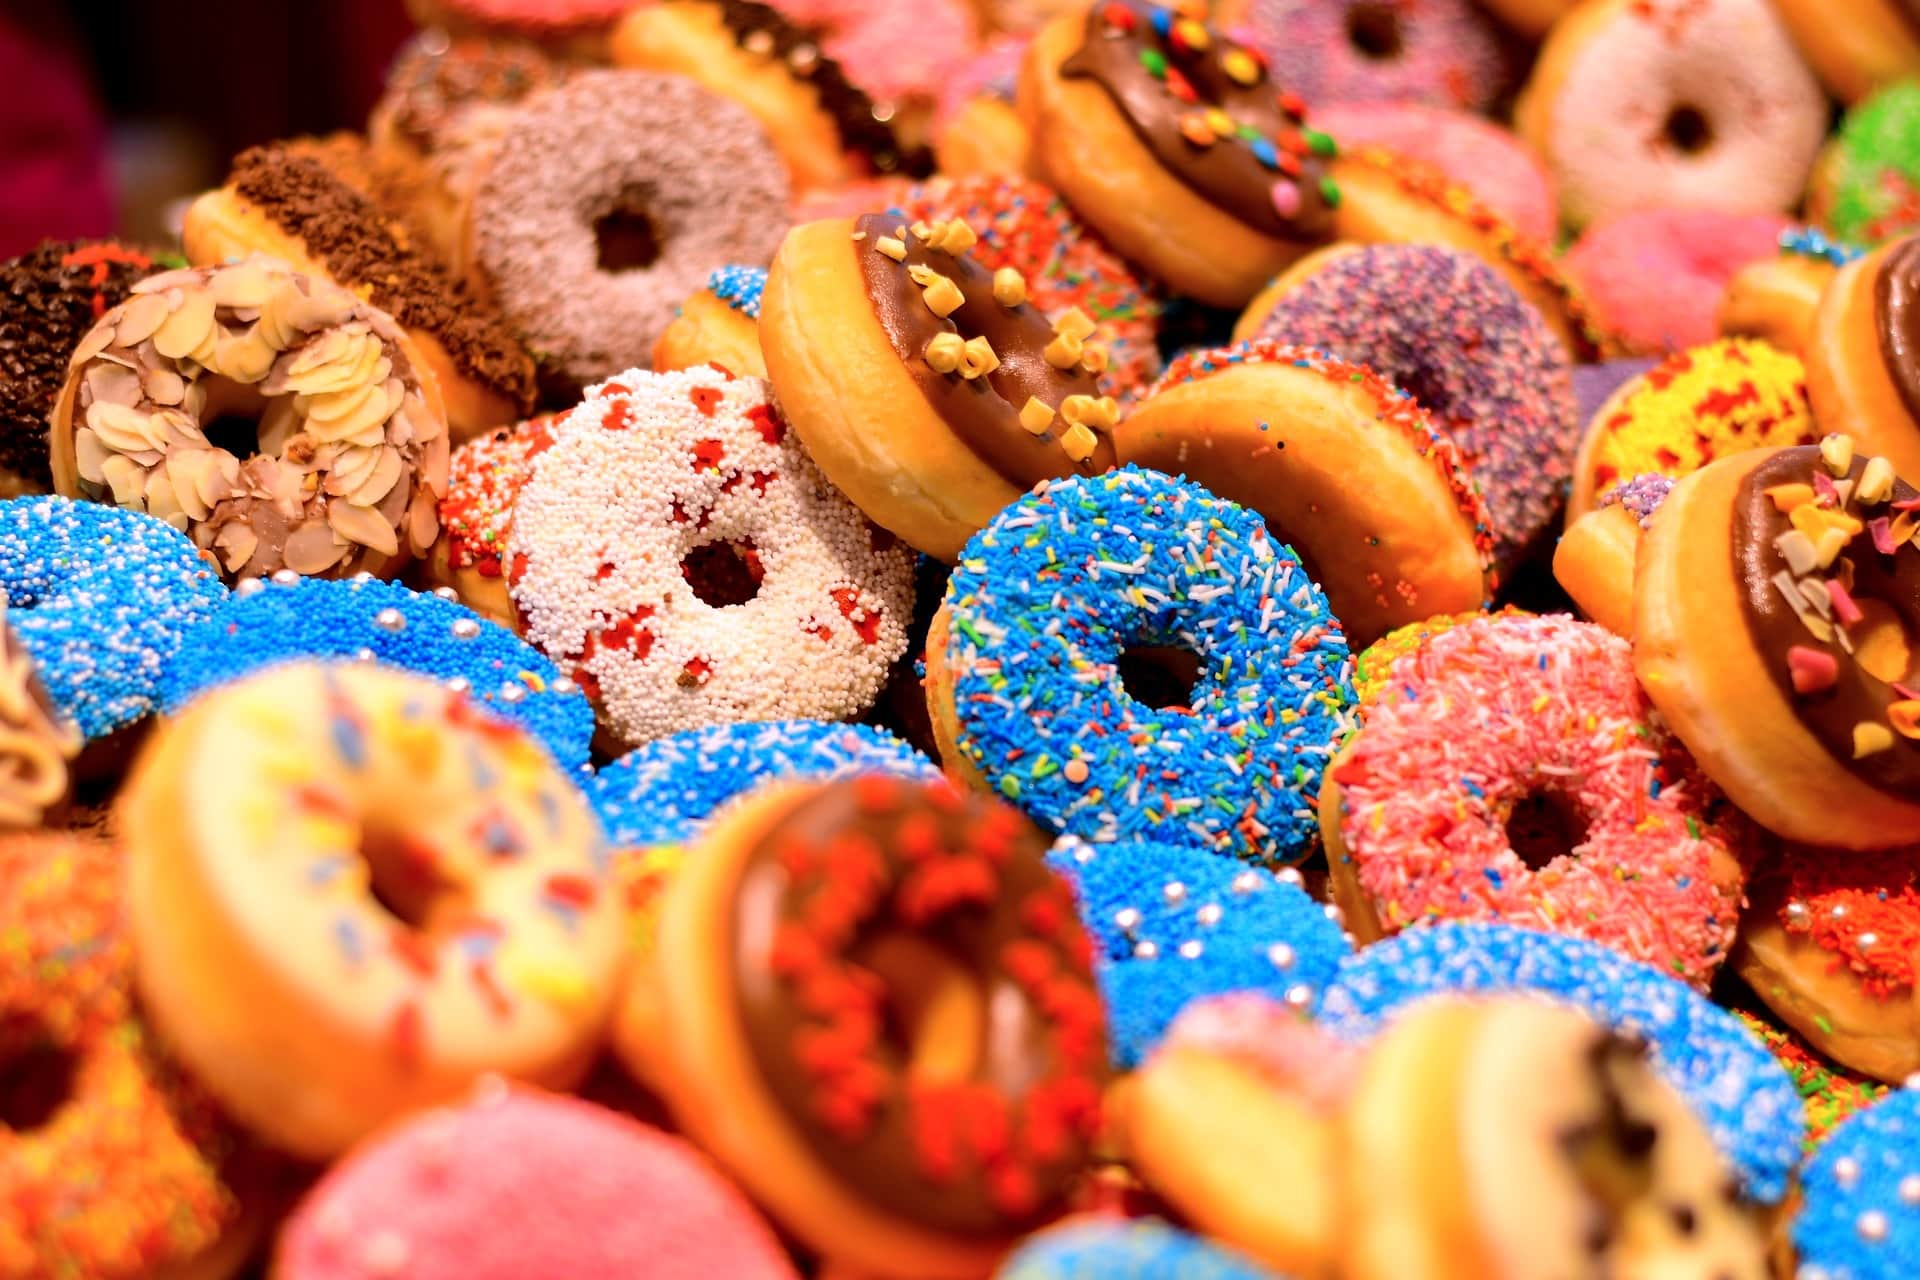 colorful selection of donuts with icing and sprinkles